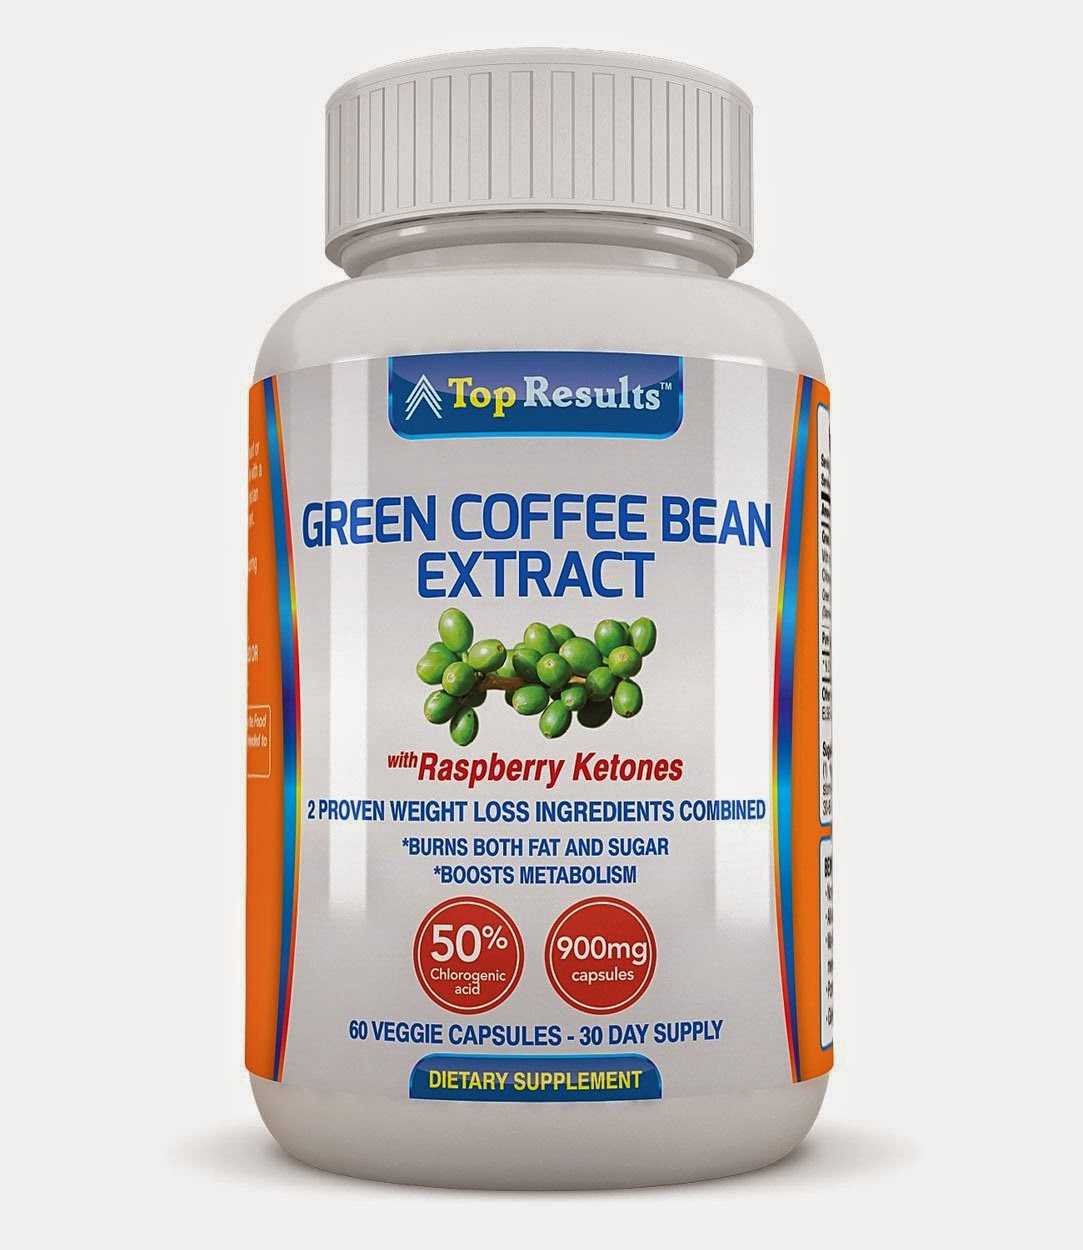 Pure Green Coffee Bean Product Review Pure Green Coffee Bean Extract 800mg Pills 50 Chlorogenic Acid Plus 100mg Raspberry Ketones Natural Organic Ingredients Ultra Quick Weight Loss Supplements